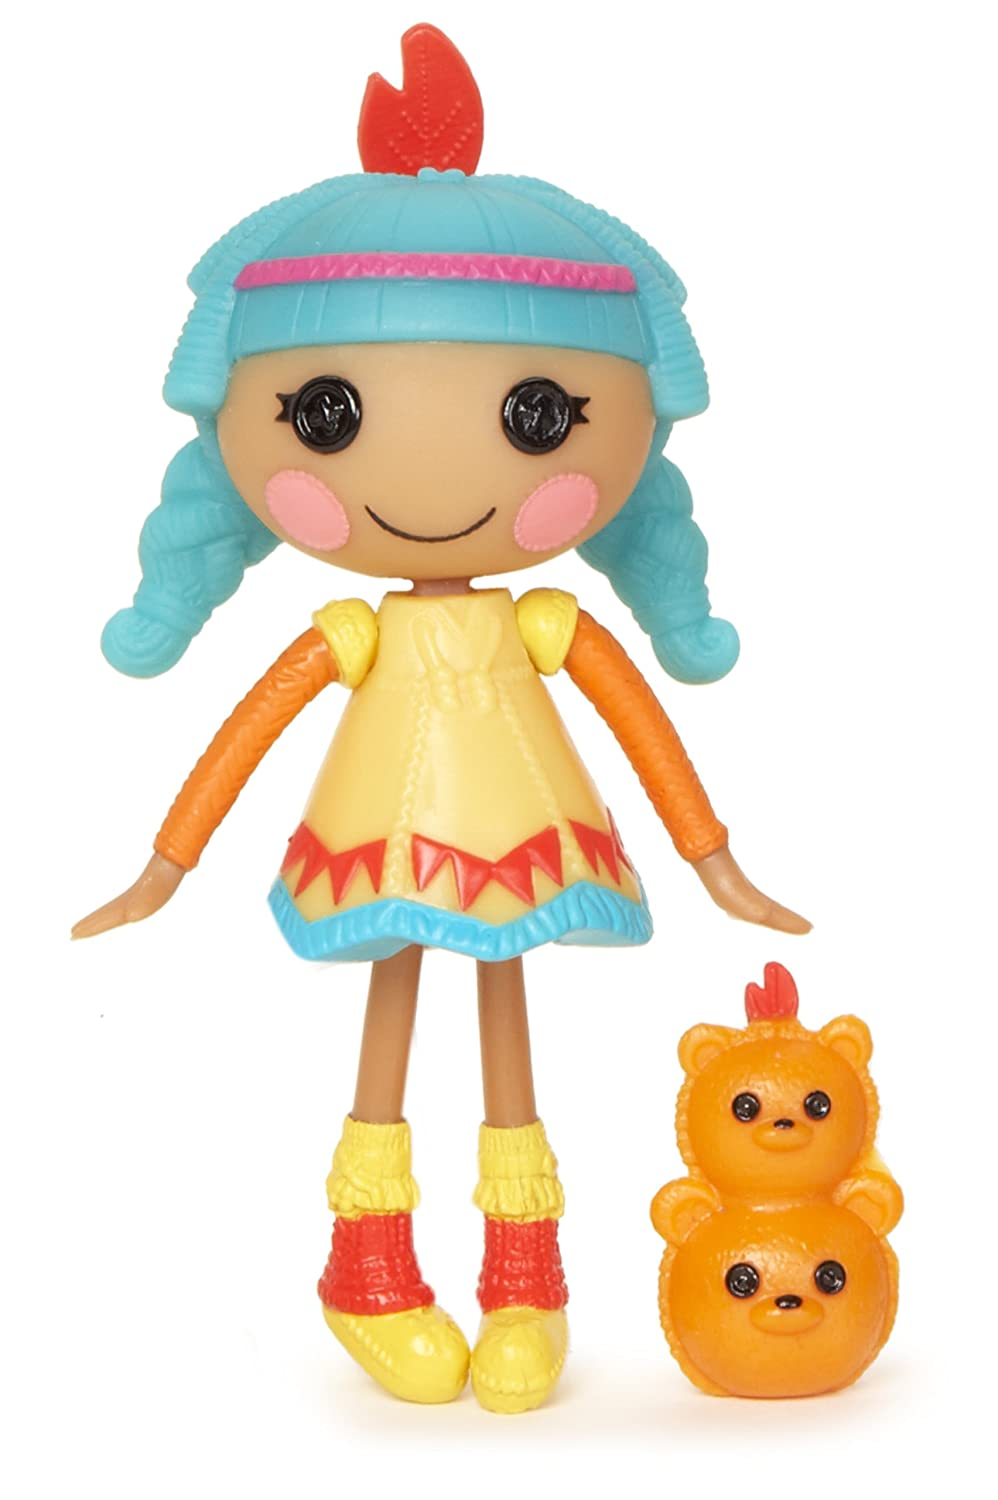 mini Lalaloopsy Feather Feather Tell-a-tale Lalaloopsy ミニララループシー Tell-a-tale B008MW6PL6, カイシ:722bb23c --- arvoreazul.com.br